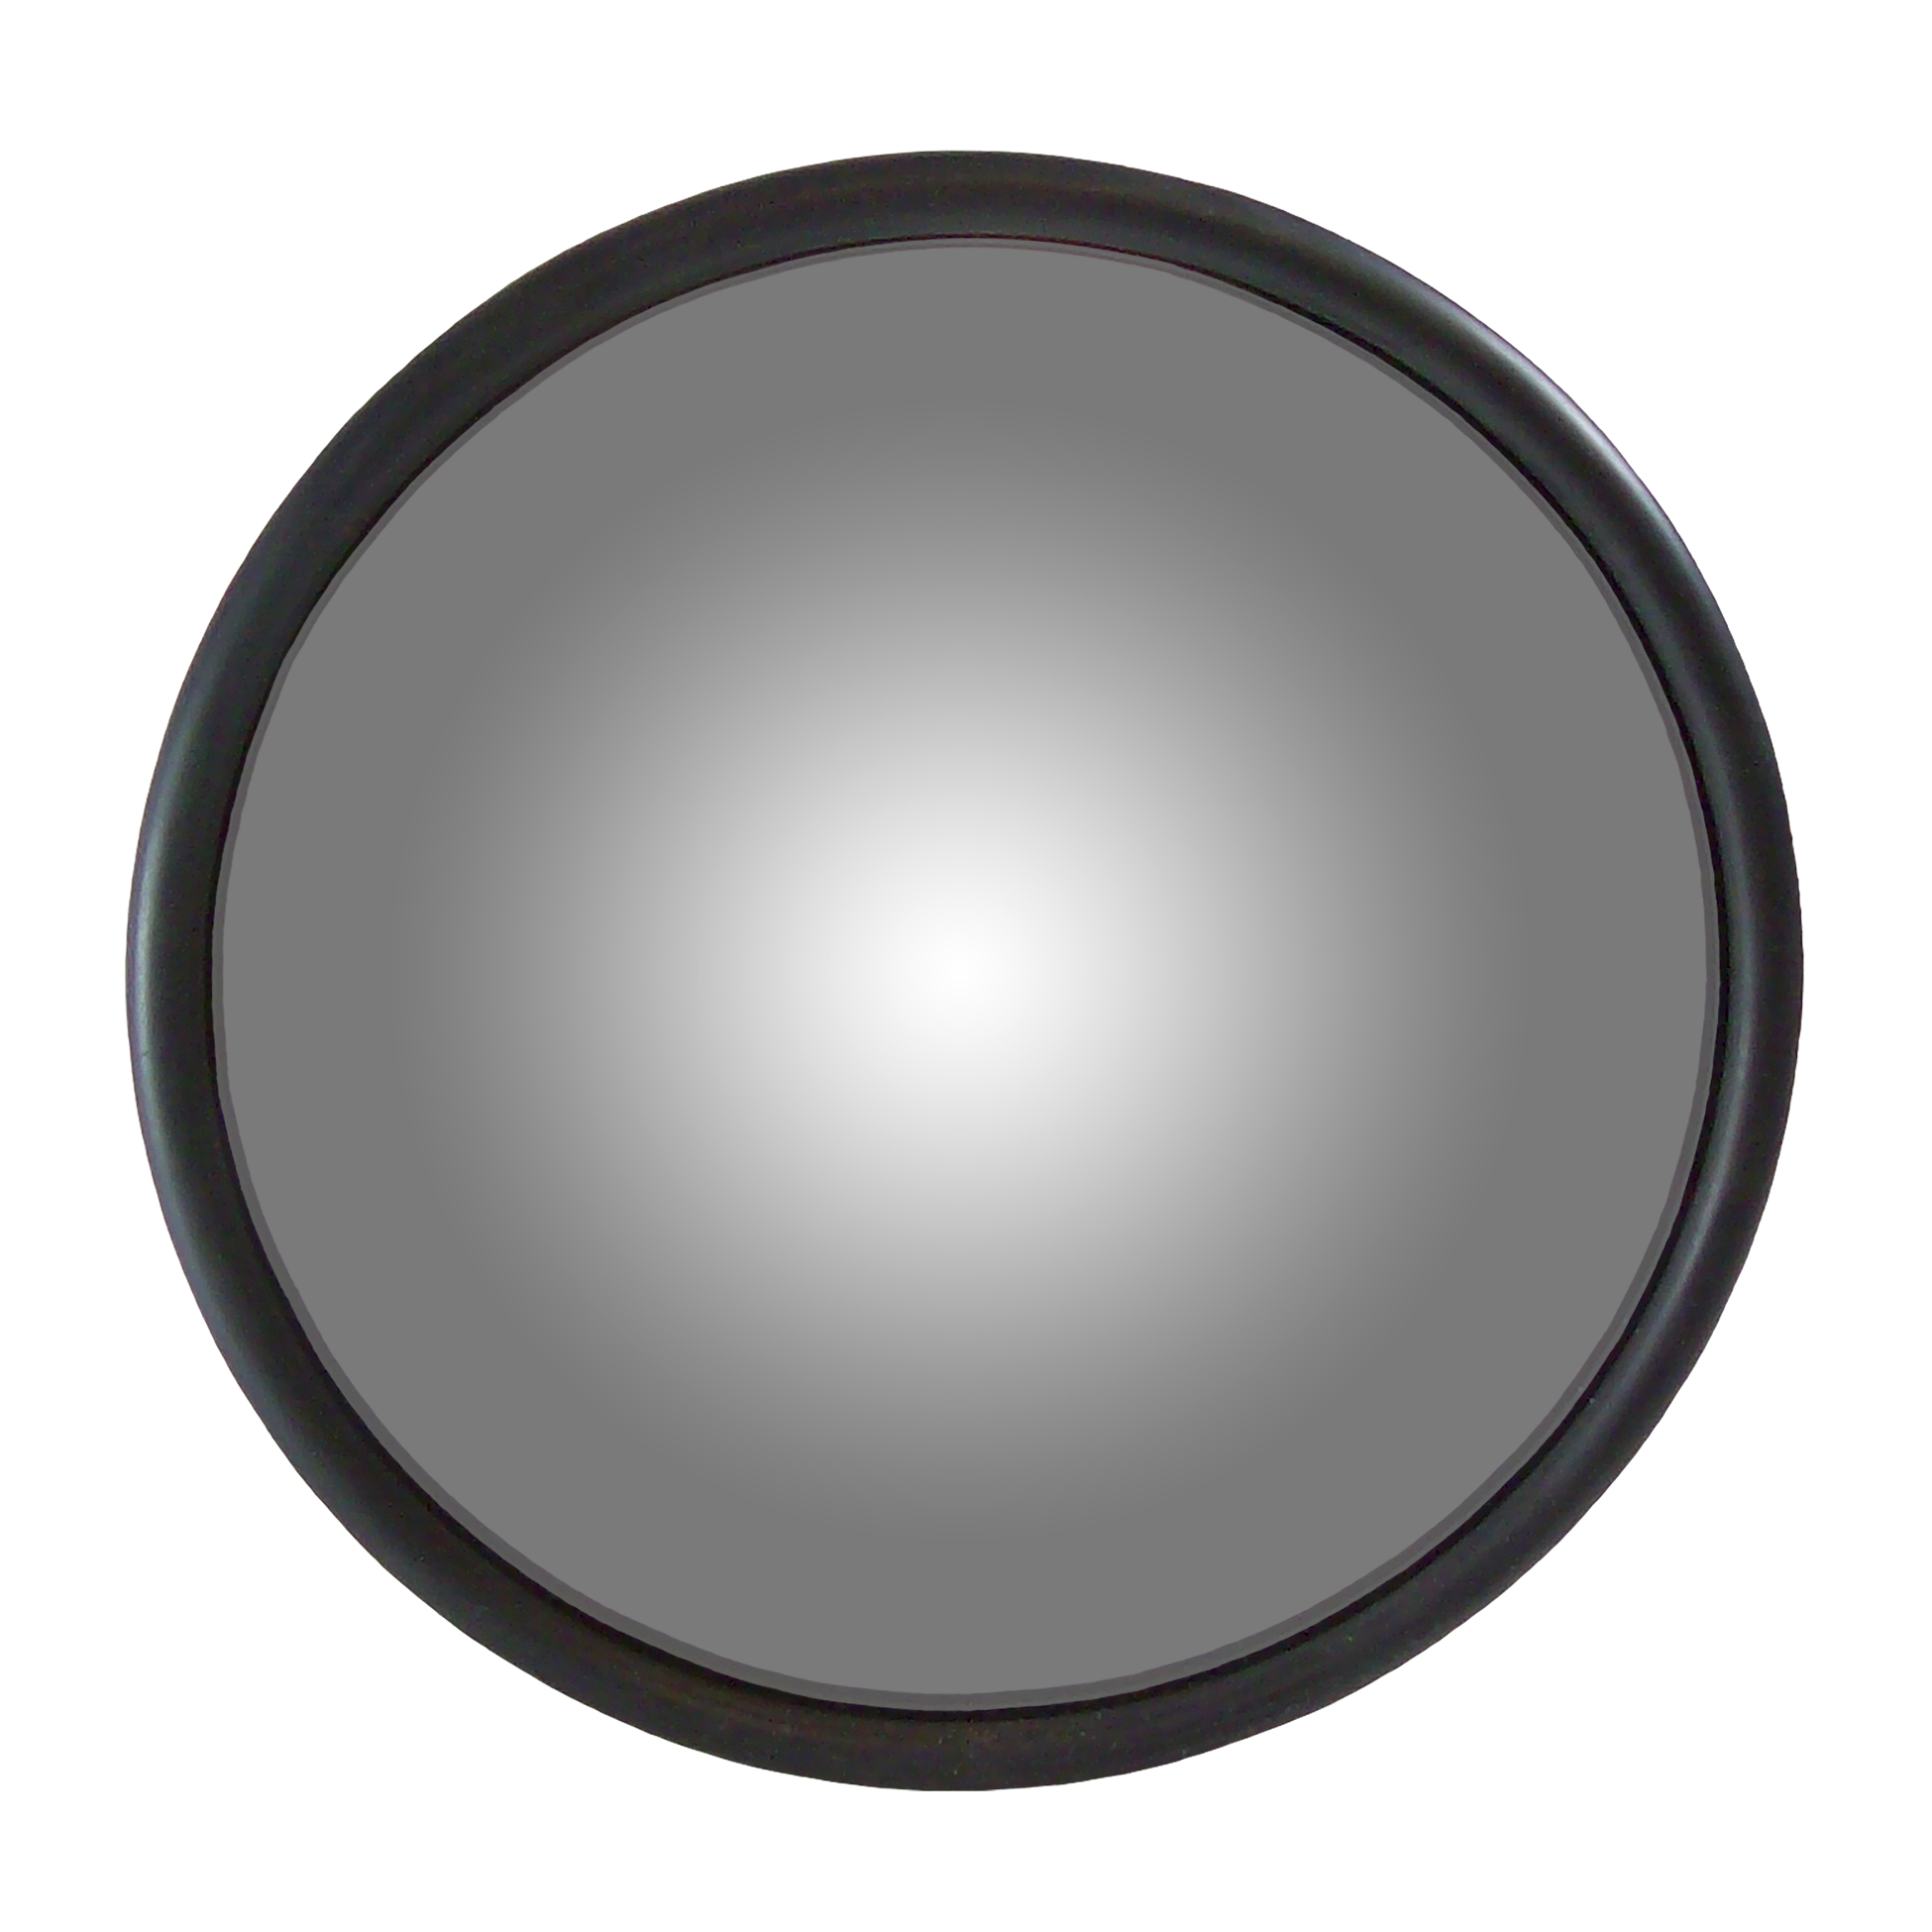 Off road style convex mirrors pair for Convex mirror